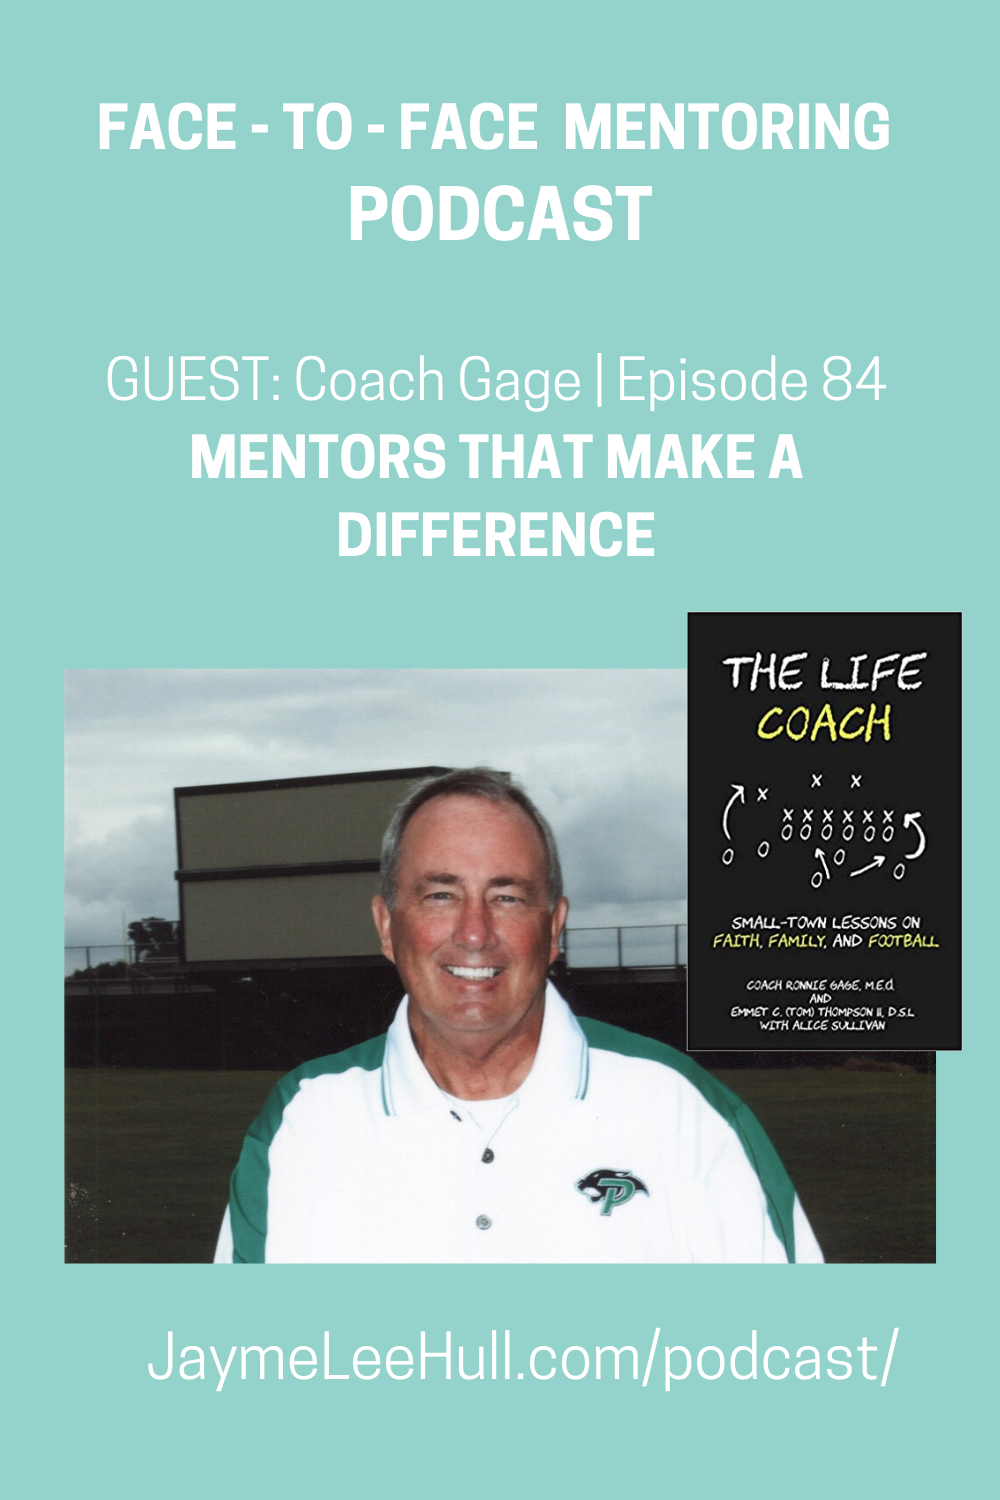 Today's Face to Face Mentoring Podcast Episode focuses on Mentors That Make A Difference with Life Coach Ronnie Gage author of The Life Coach: Small-Town Lessons on Faith, Family and Football.